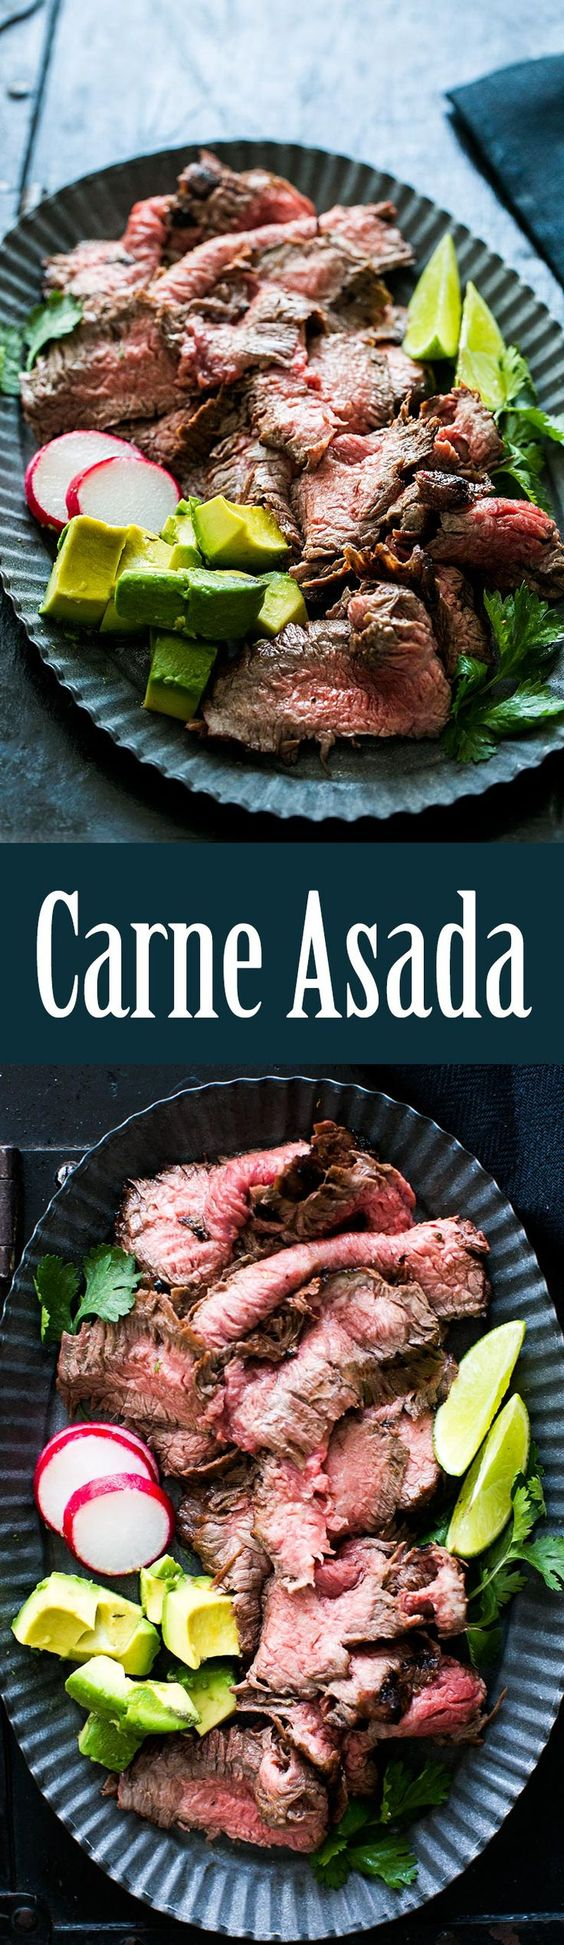 Grilled Carne Asada! Thinly sliced, grilled beef made with marinated ...